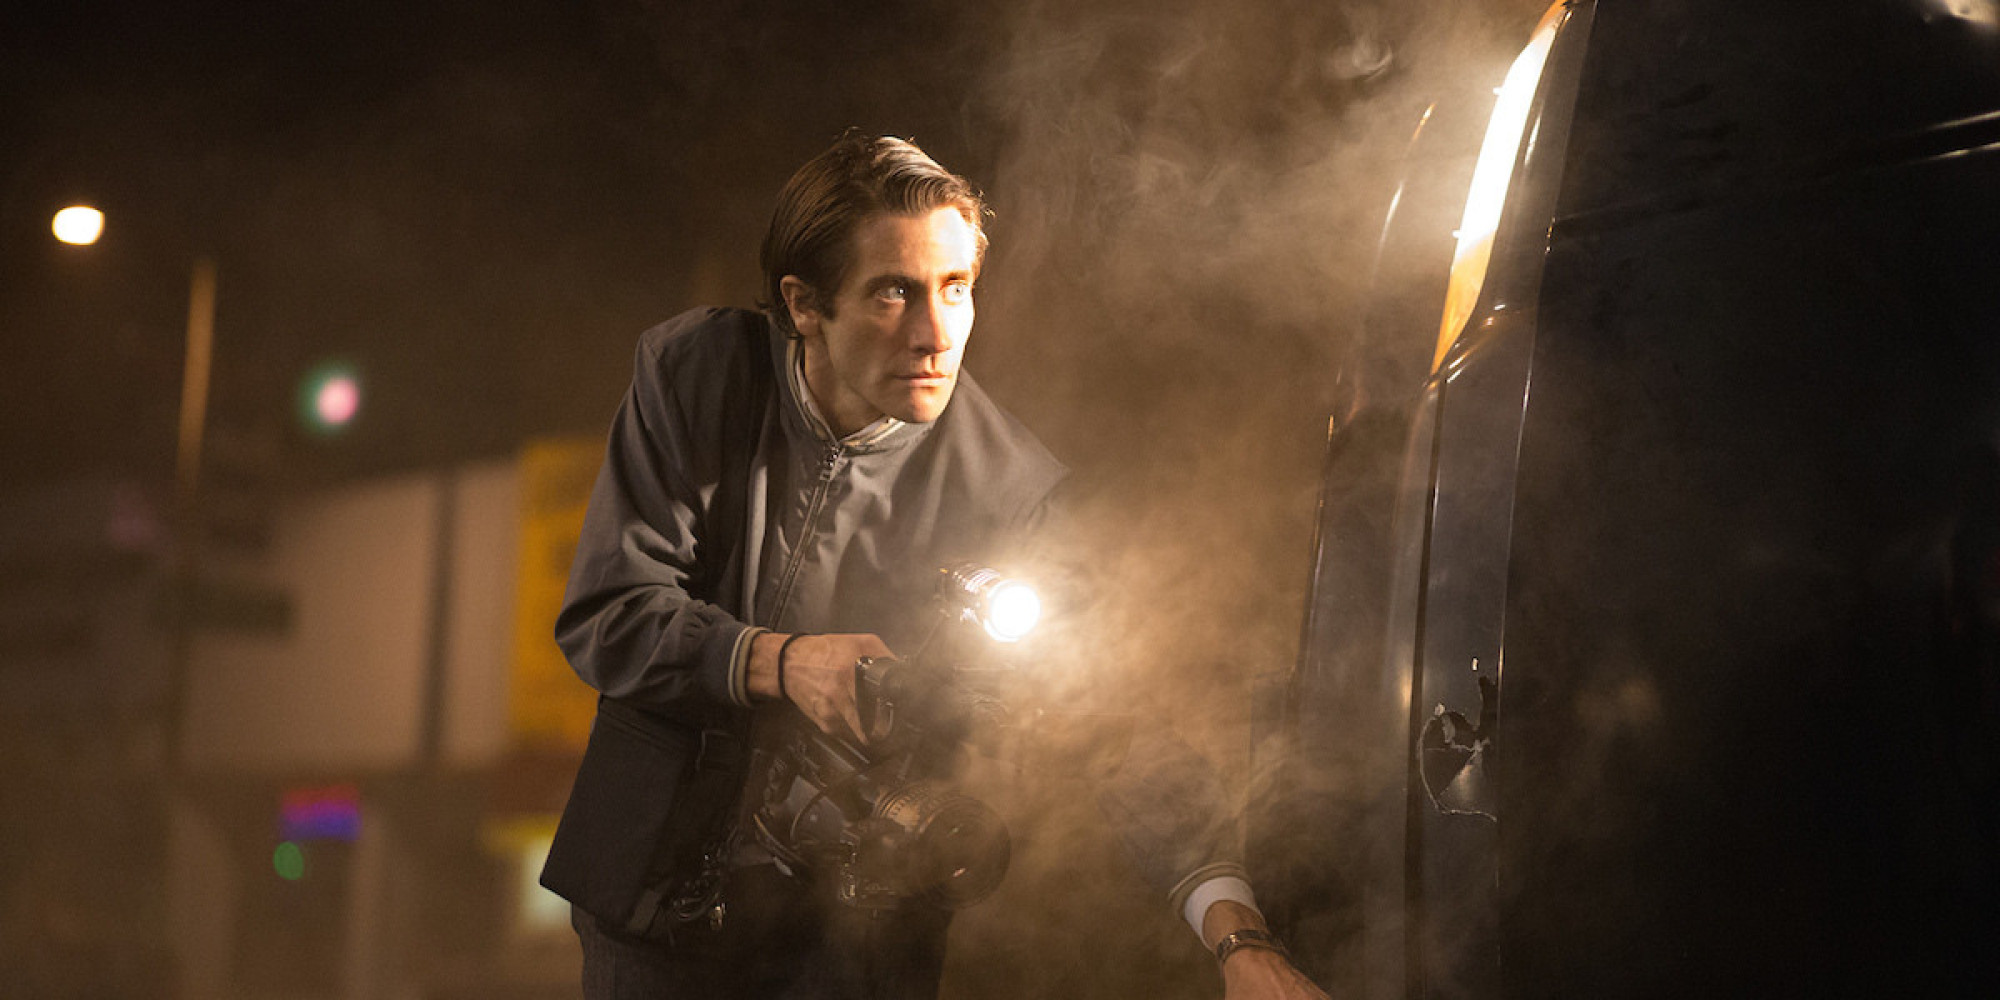 https://i2.wp.com/i.huffpost.com/gen/1926533/thumbs/o-NIGHTCRAWLER-TRAILER-facebook.jpg